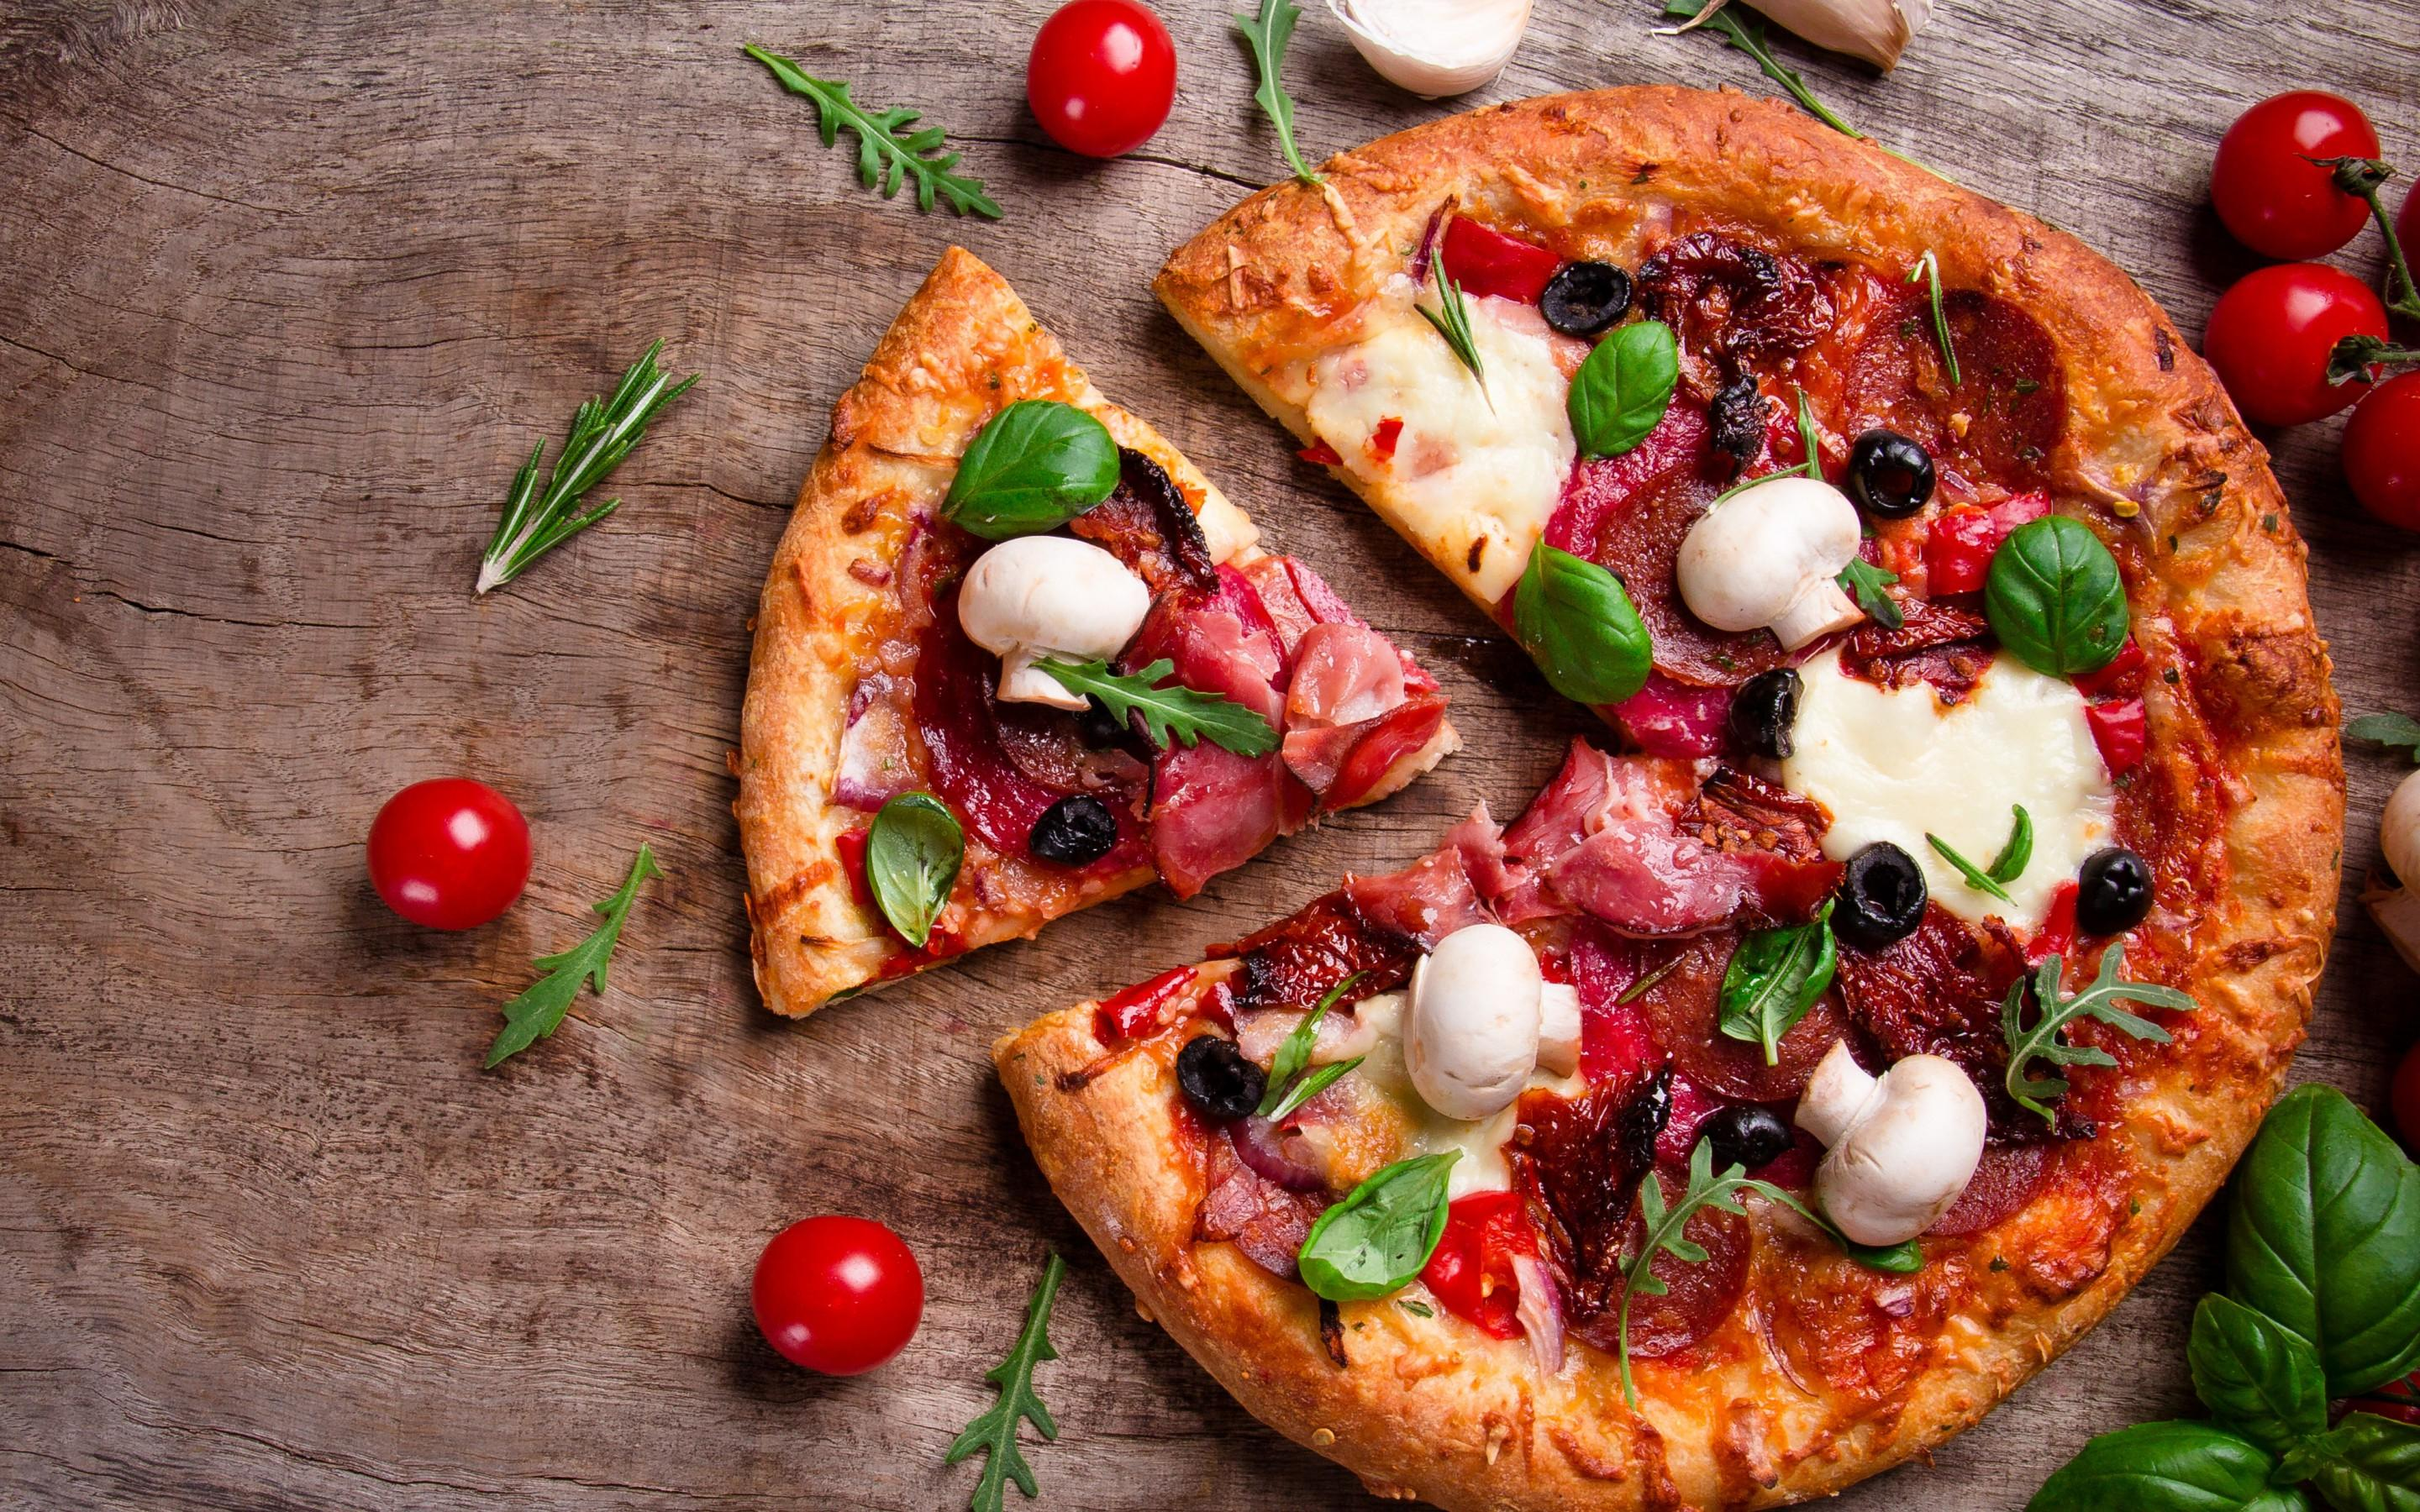 Pizza Nights are May 11th and 25th